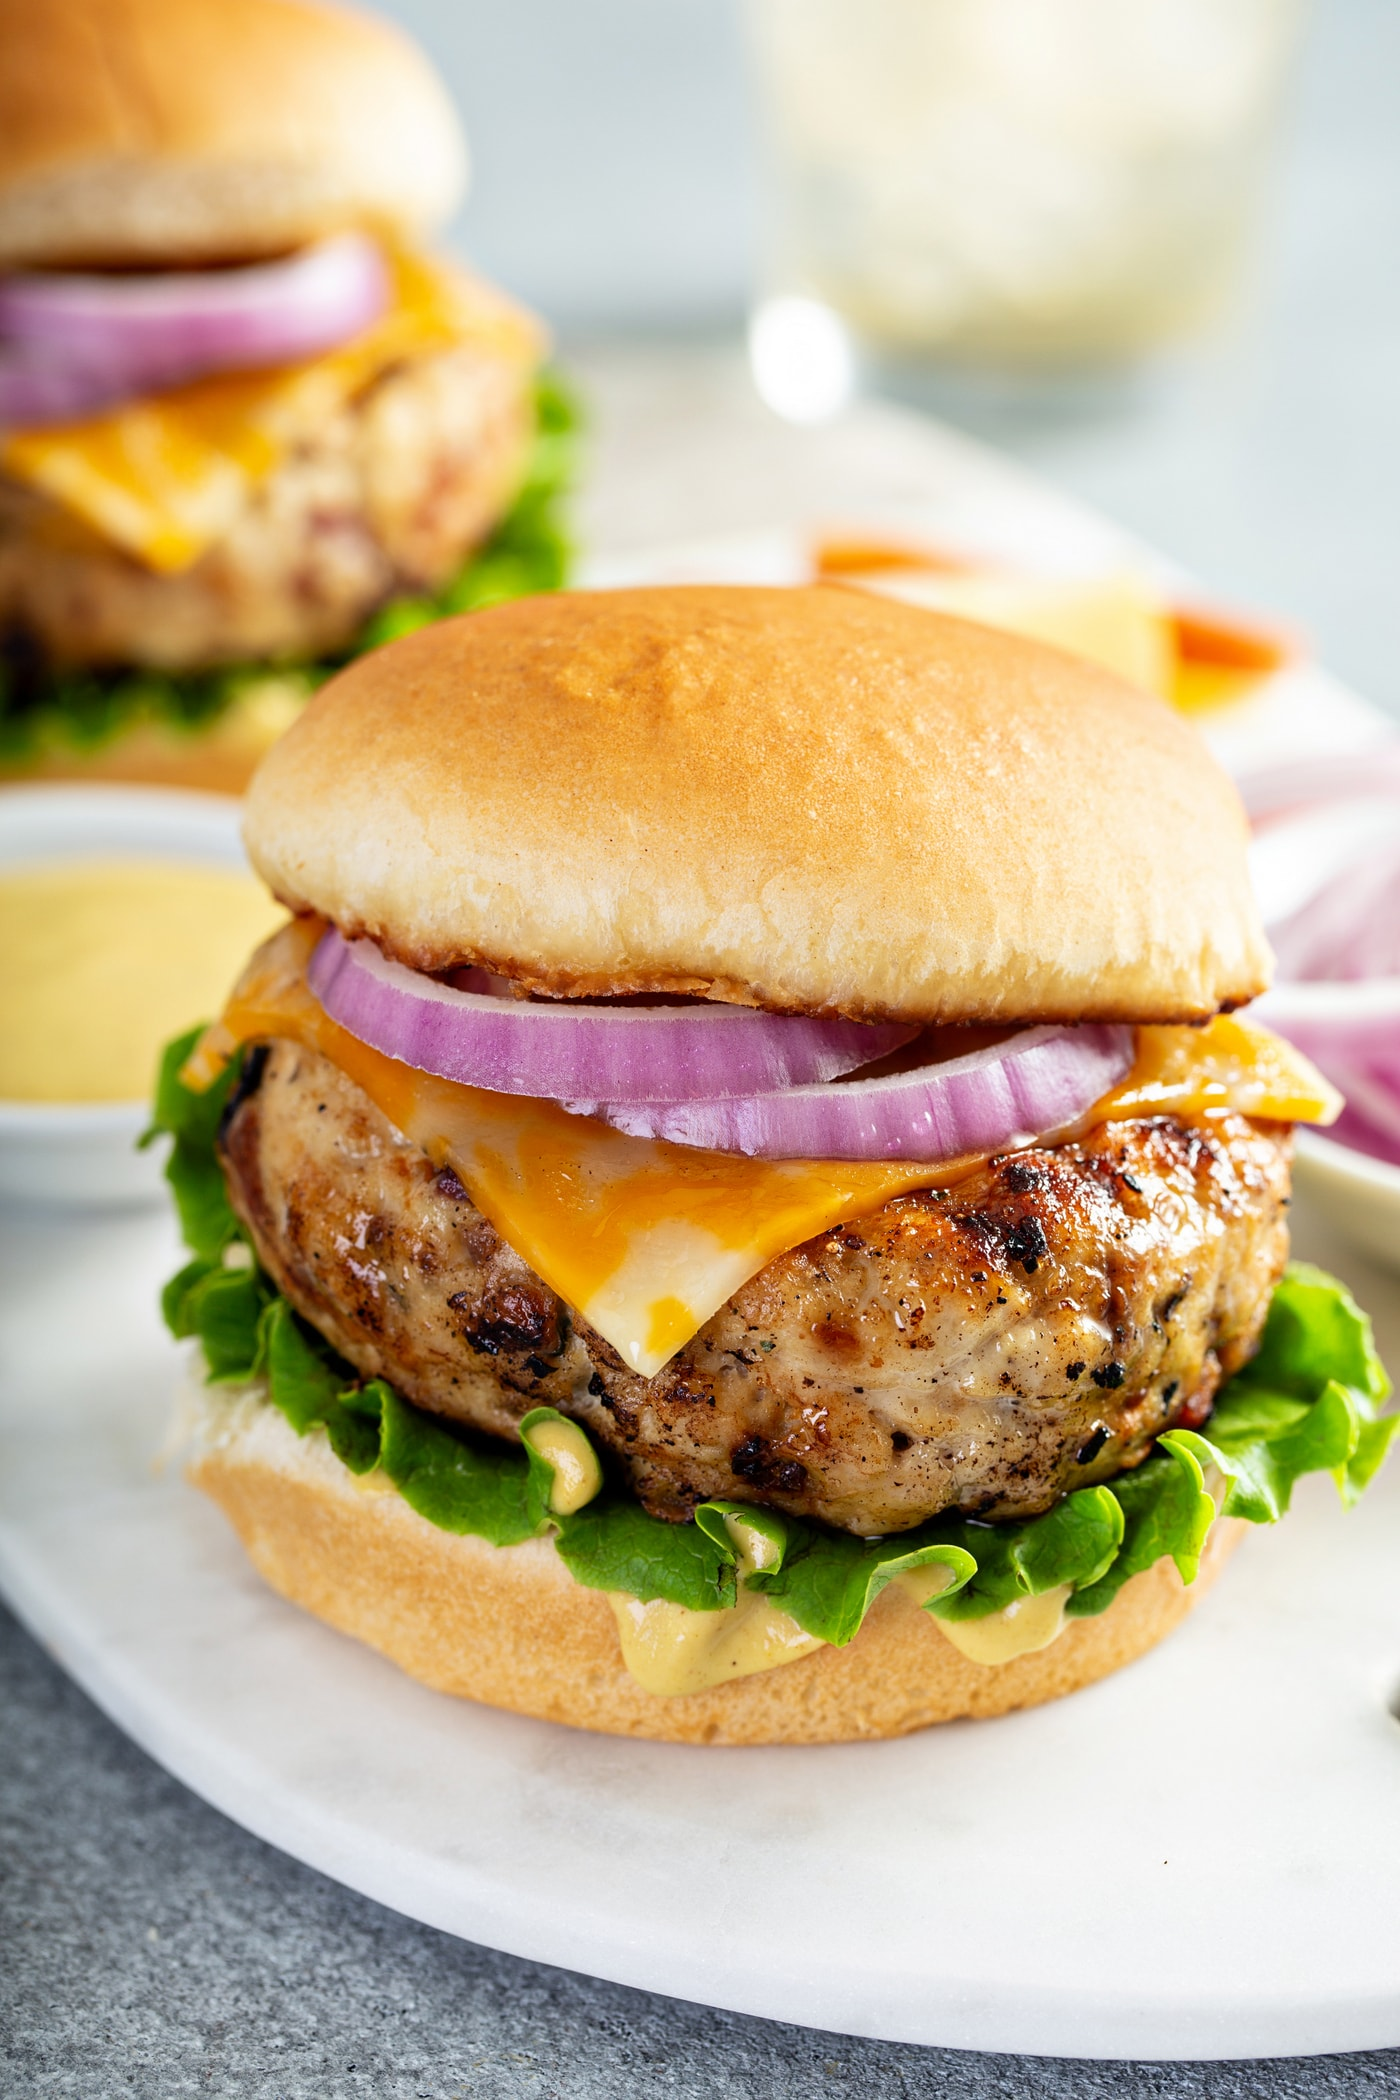 A chicken burger on a bun with lettuce, cheese, and red onion. There is another chicken burger in the background and small containers of bread crumbs, and red onions.